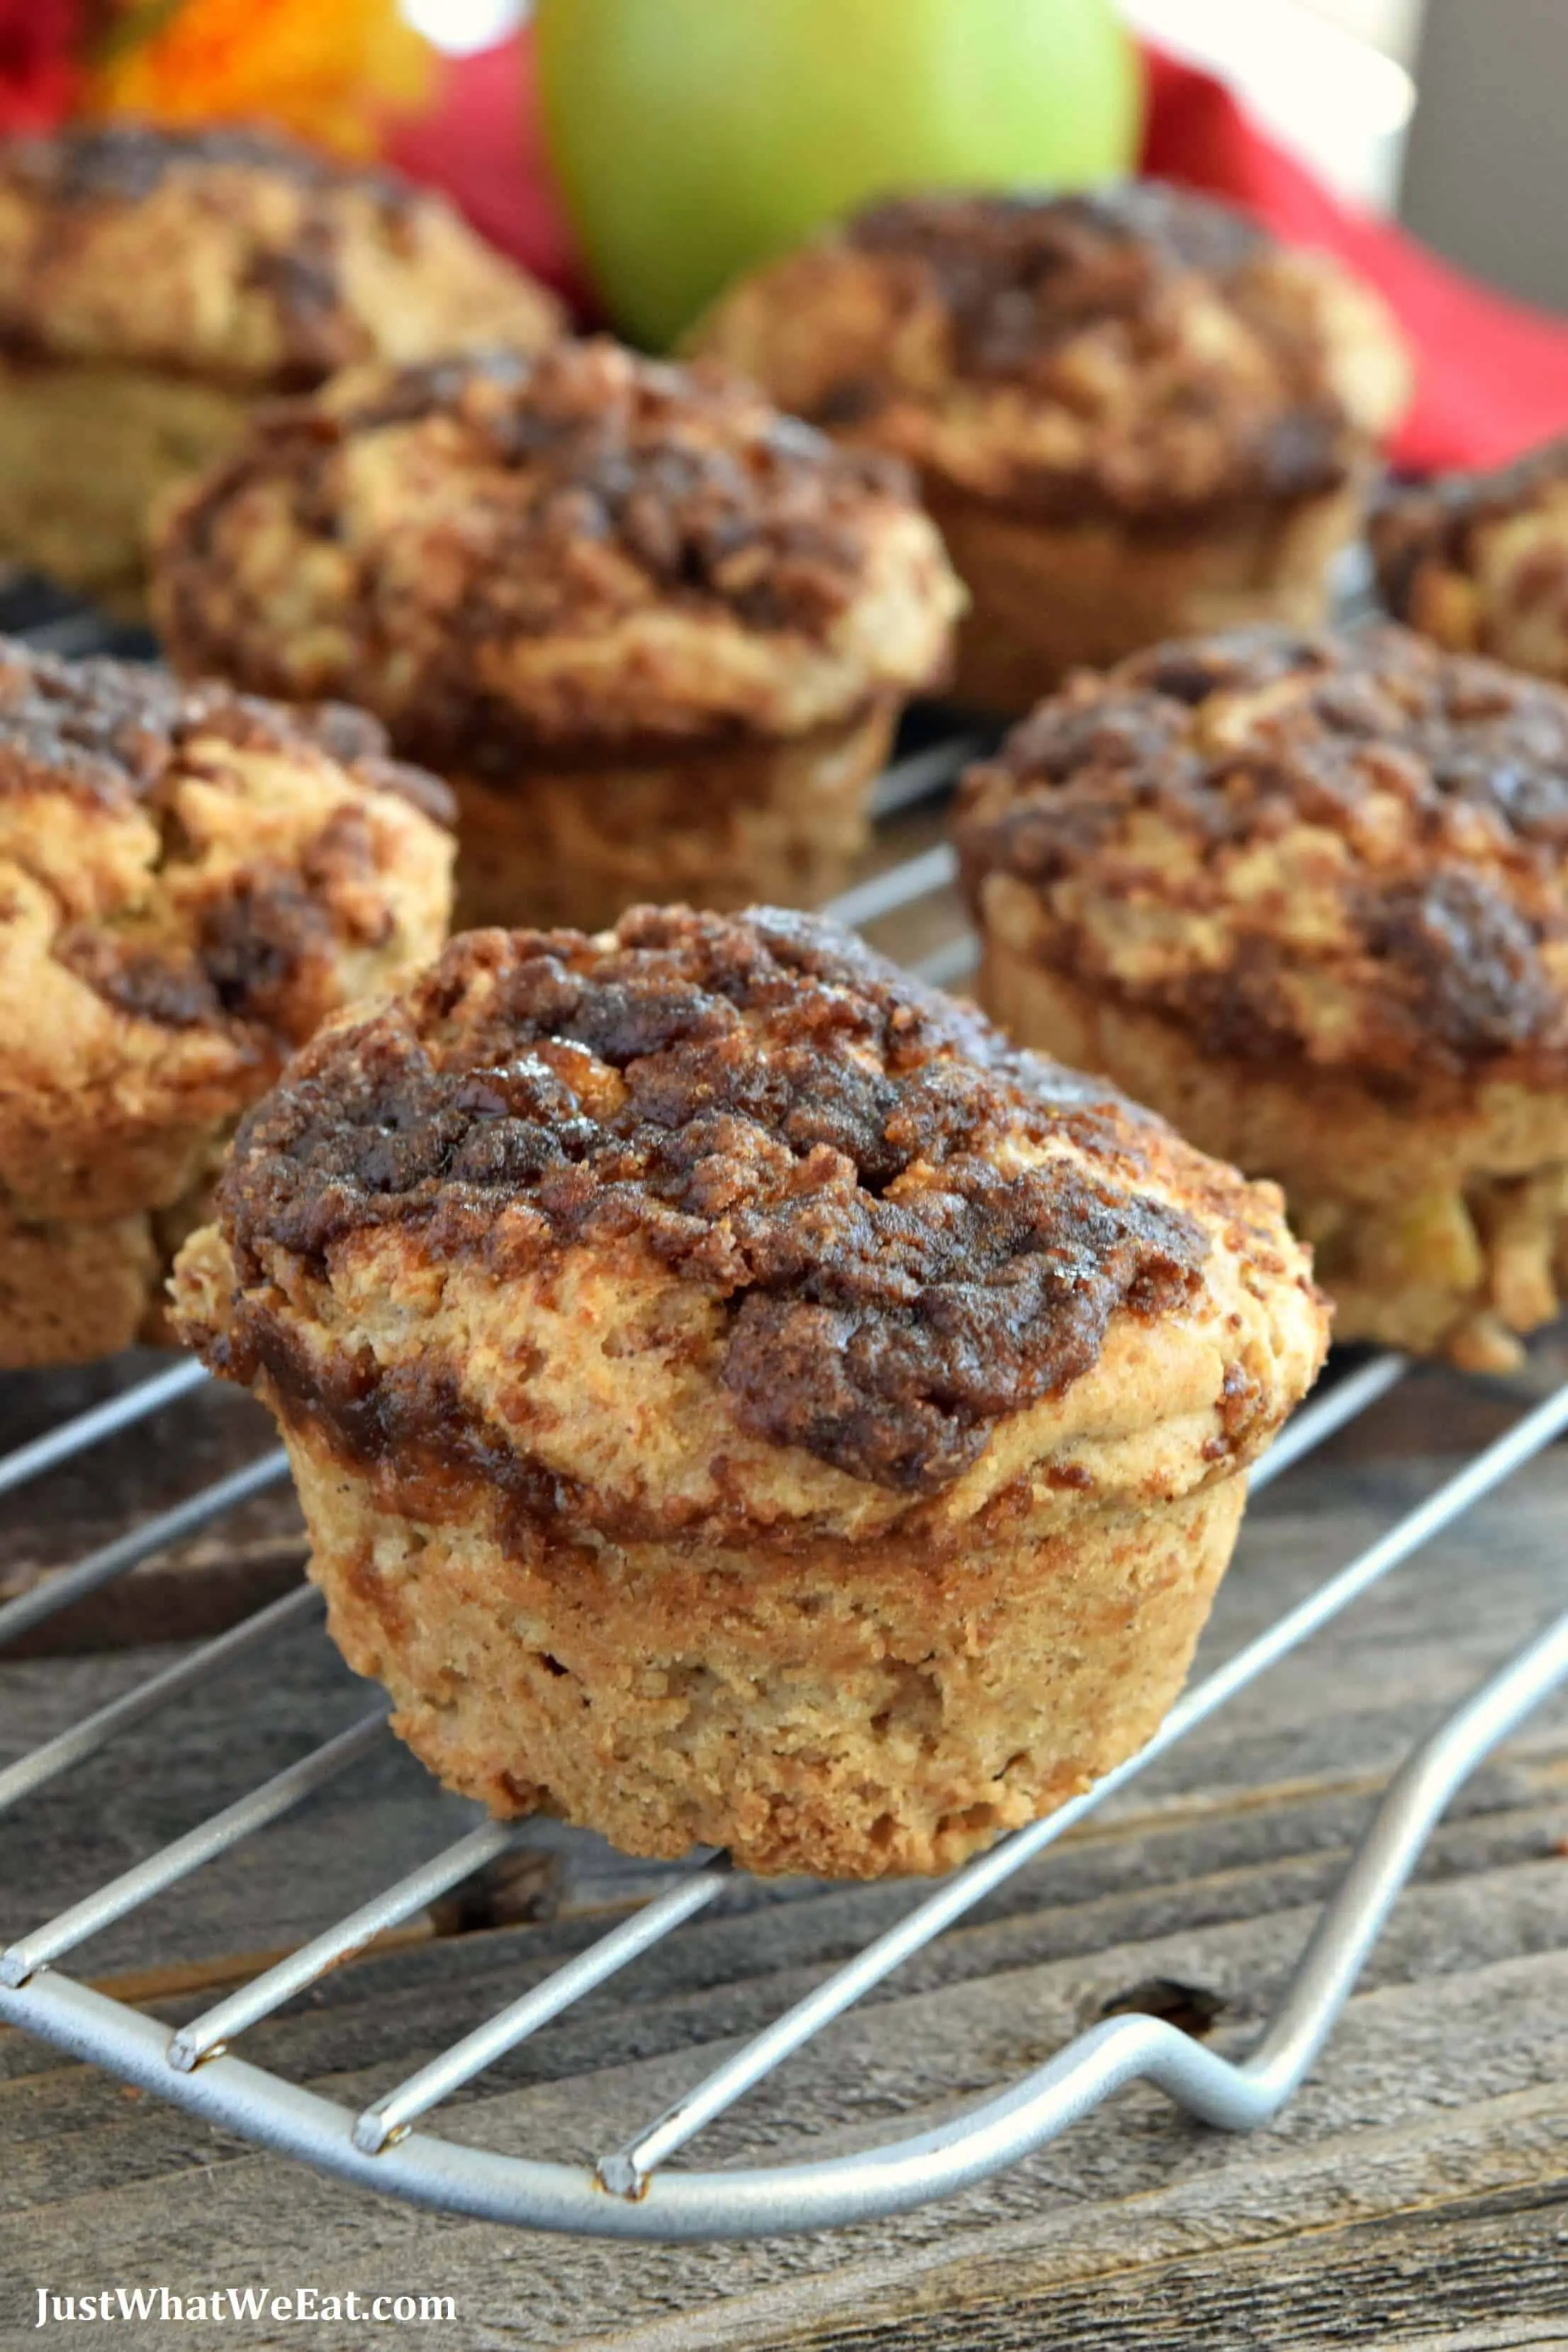 Apple Crumble Muffins - Gluten Free, Vegan, and Refined Sugar Free